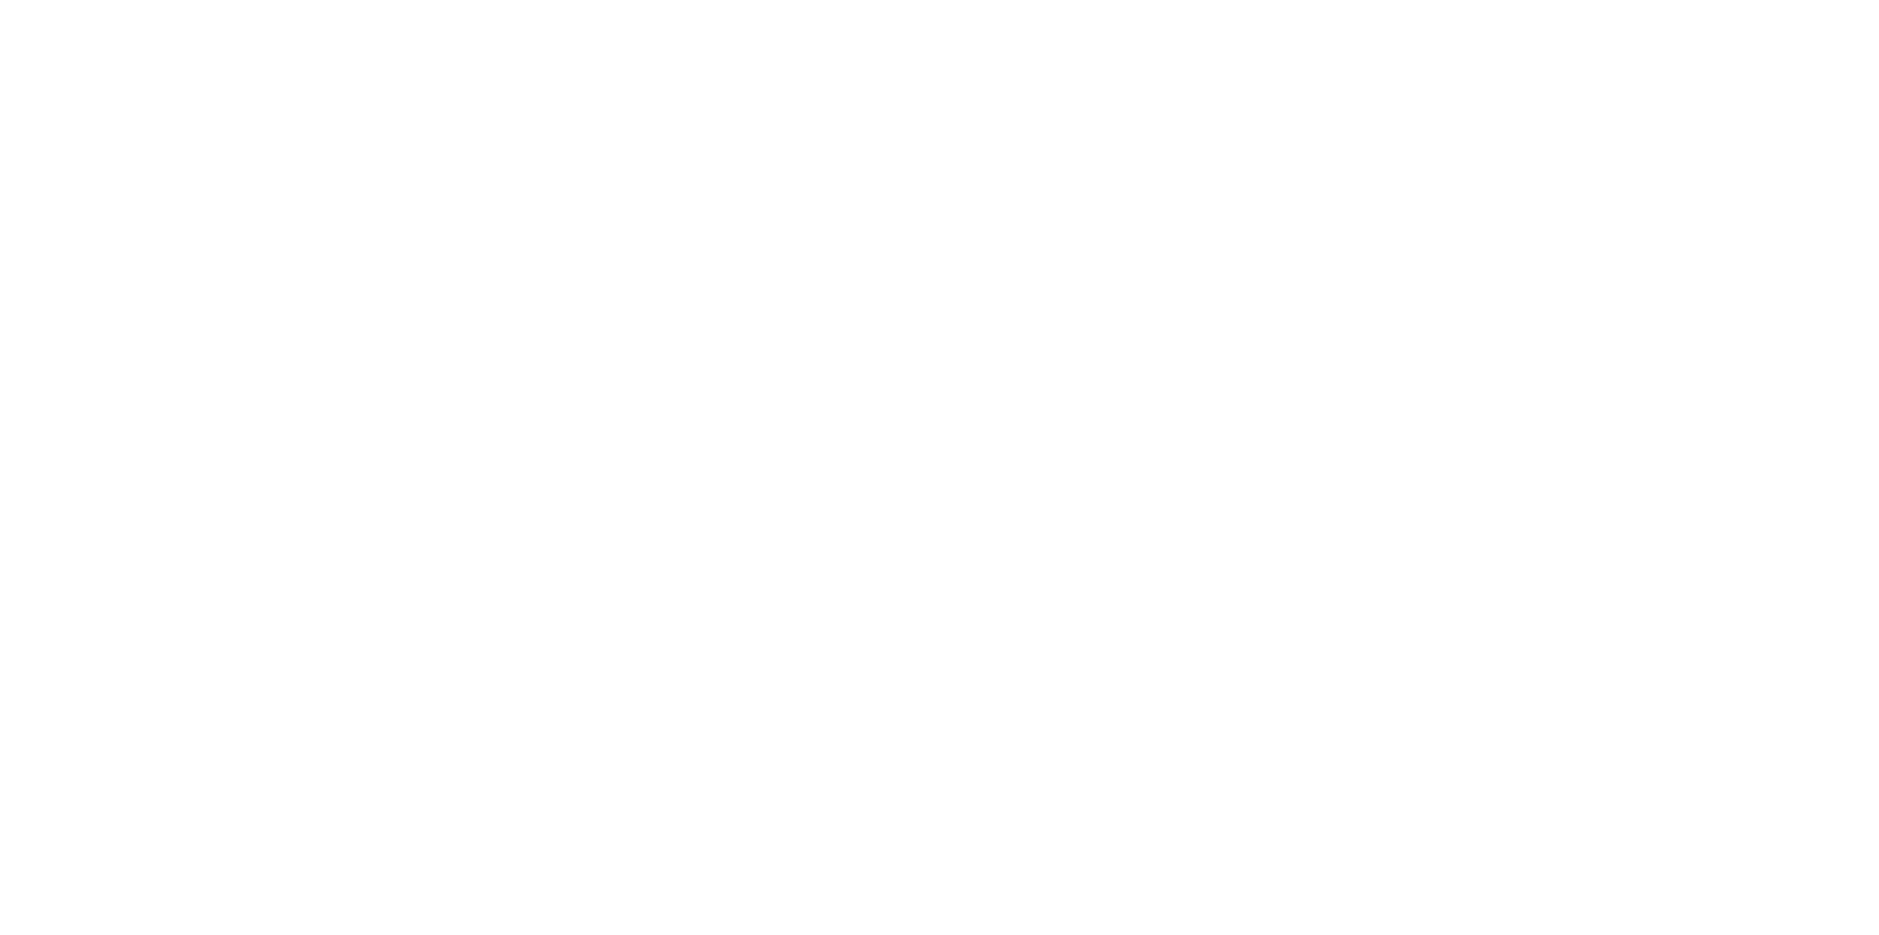 Brand logos for GE Appliances, a Haier Company